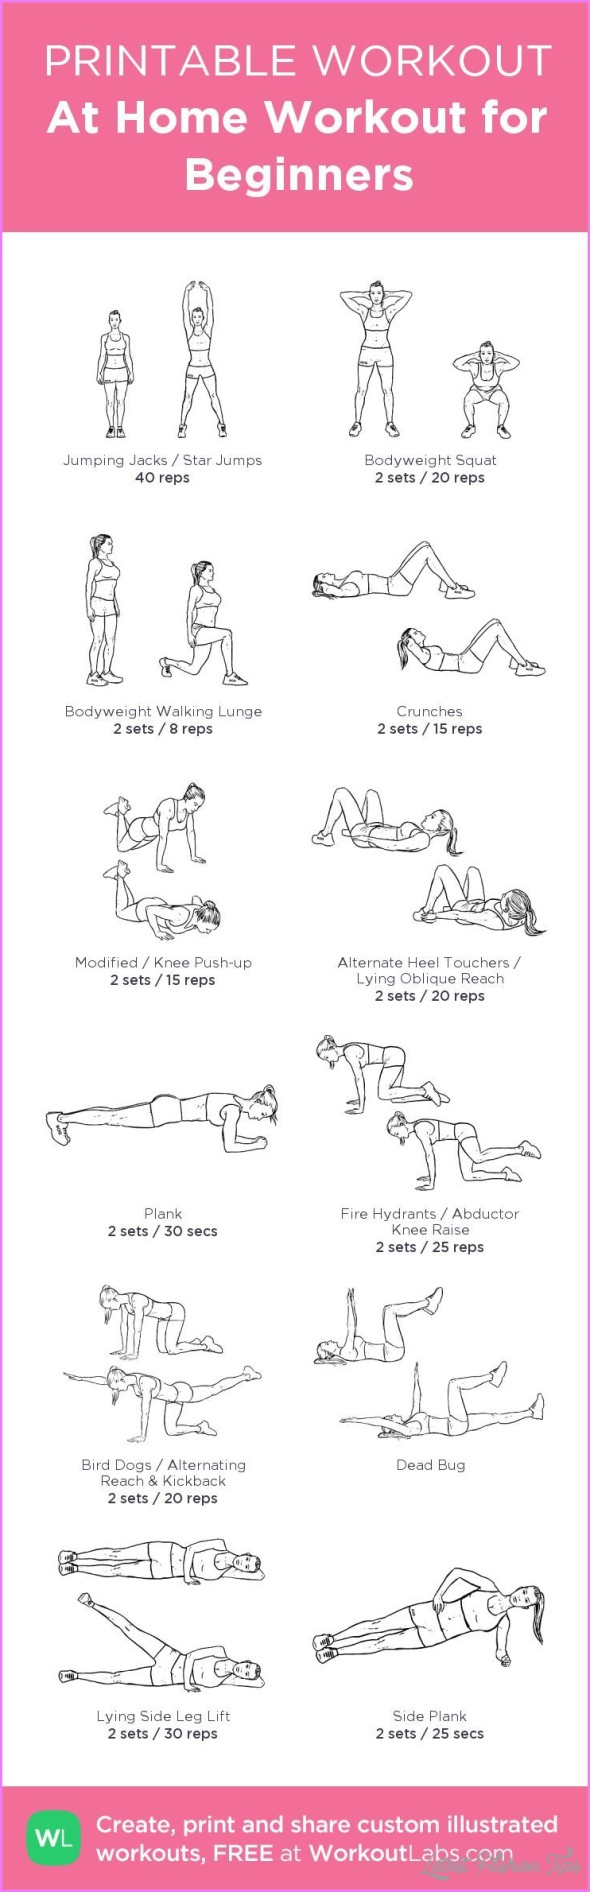 Simple Exercise Routine For Weight Loss _8.jpg